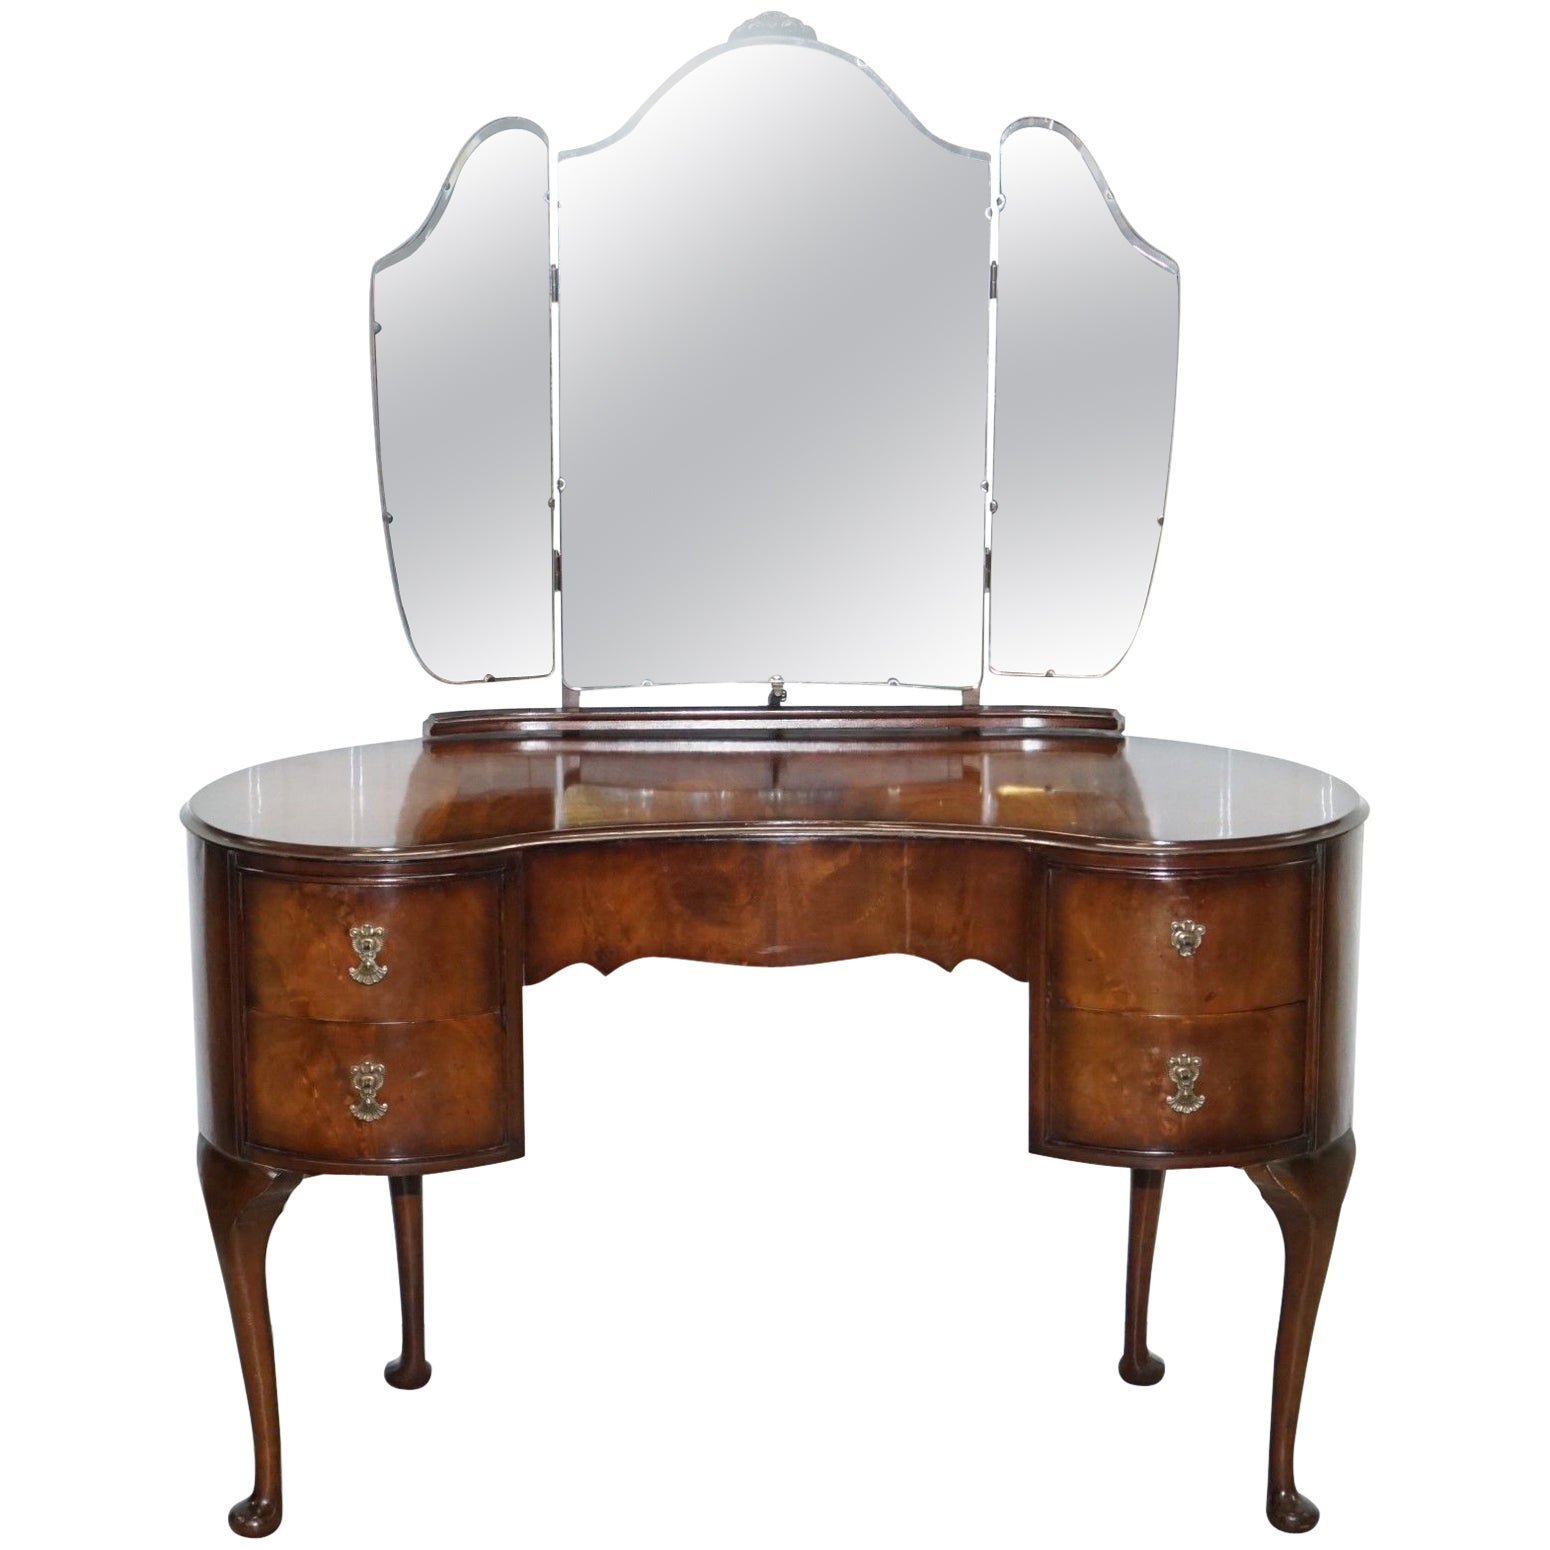 Incroyable Stunning 1930s Flamed Mahogany Kidney Shaped Dressing Table Tri Fold  Mirrors At 1stdibs